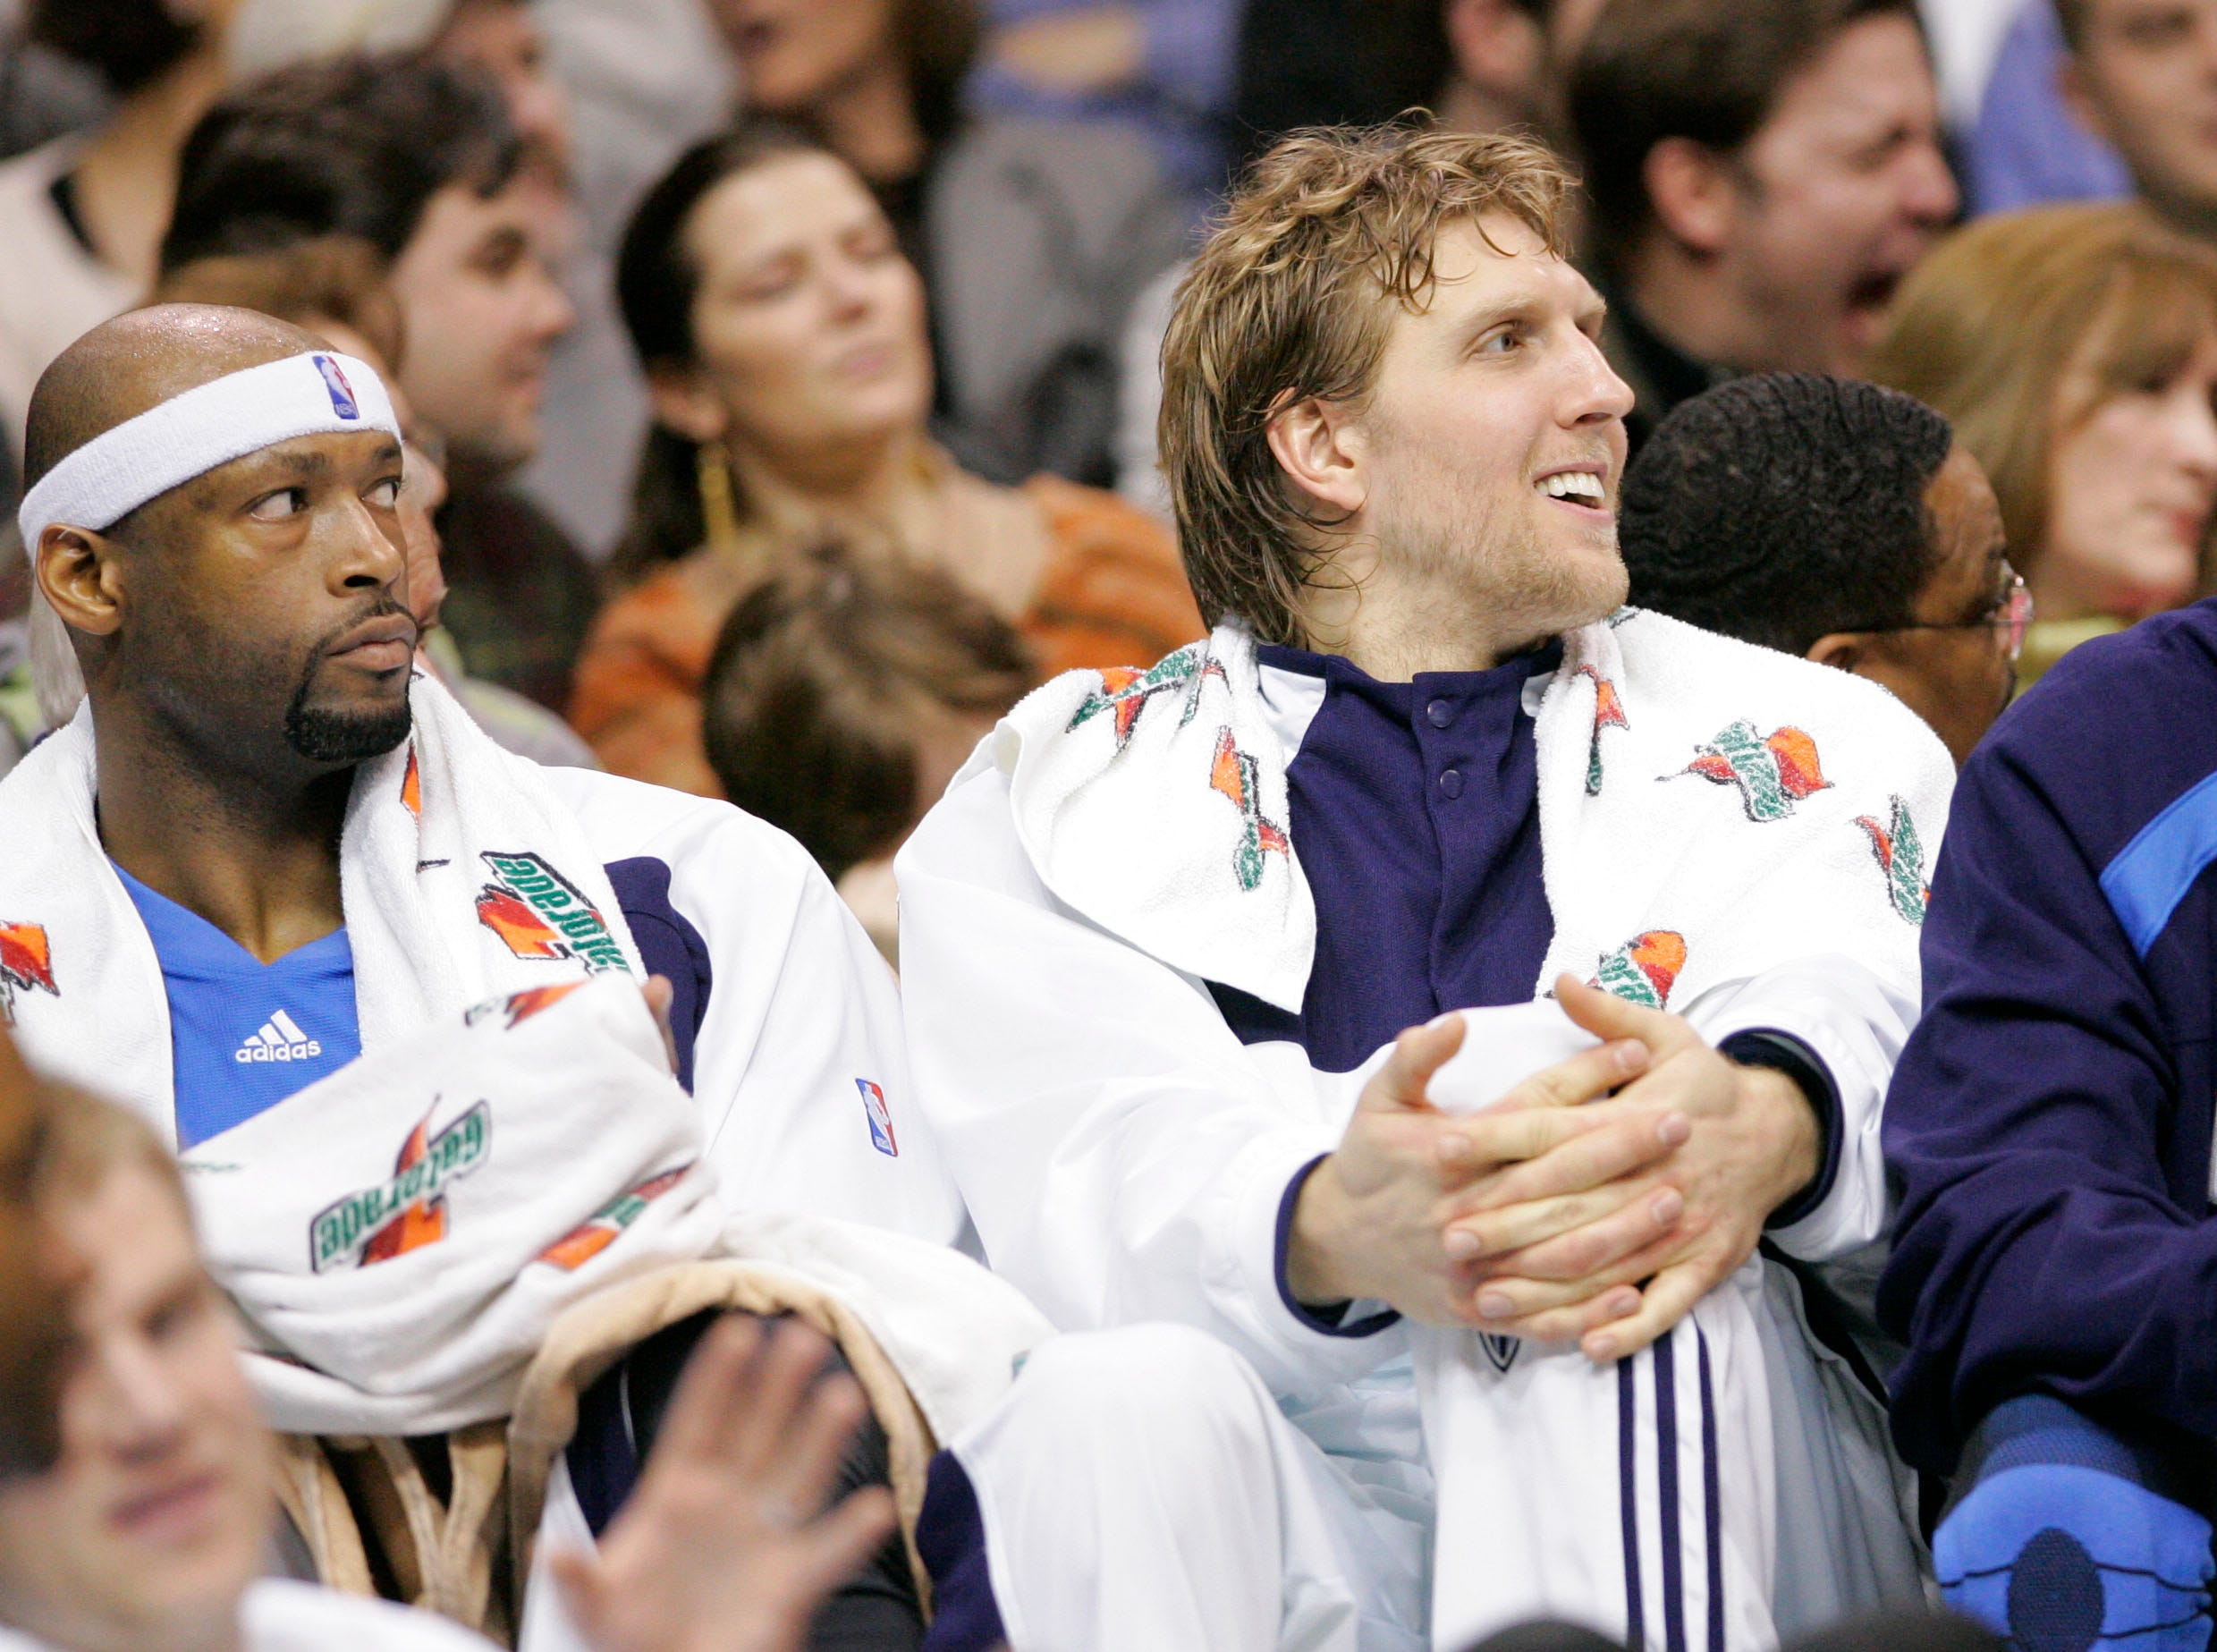 Dallas Mavericks starters Erick Dampier, left, Dirk Nowitzki, center, of Germany, and Jerry Stackhouse watch their NBA basketball game against the Portland Trail Blazers from the bench during the second half of the Mavericks' 99-74 win in Dallas, Wednesday, Jan. 10, 2007.